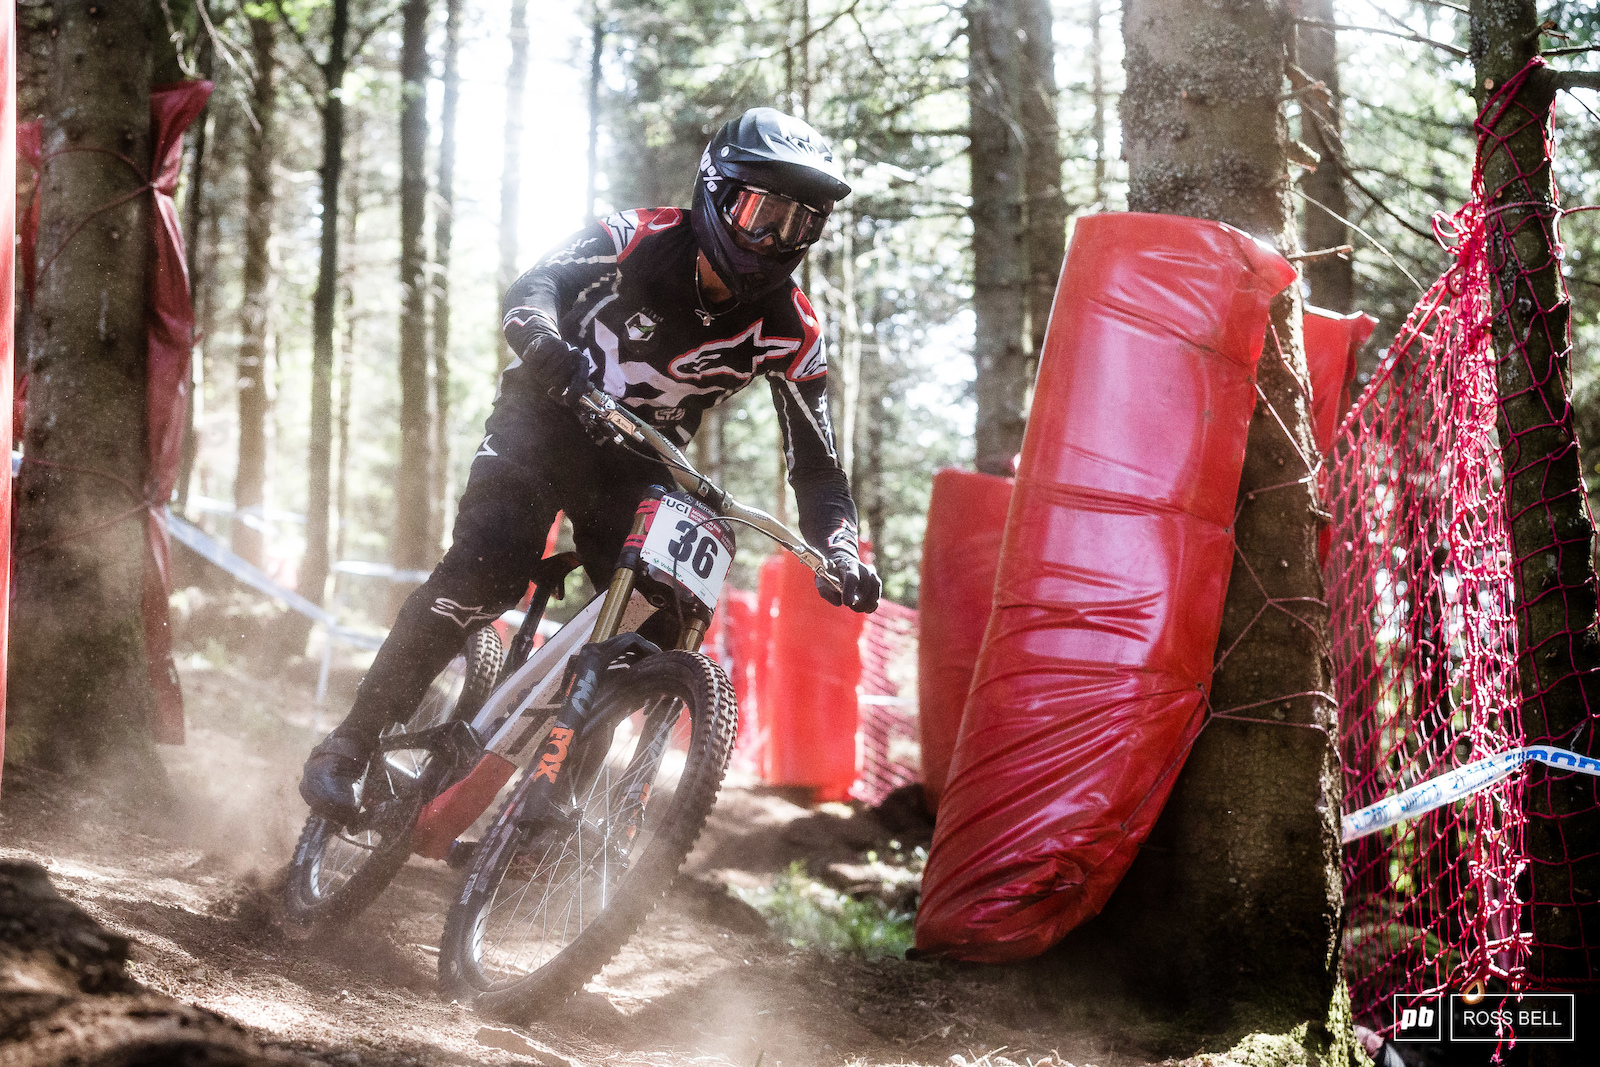 After a career best 9th in MSA last time out Angel Saurez was looking strong on track once again. The Spaniard has a tonne of style especially when his wheels leave the ground